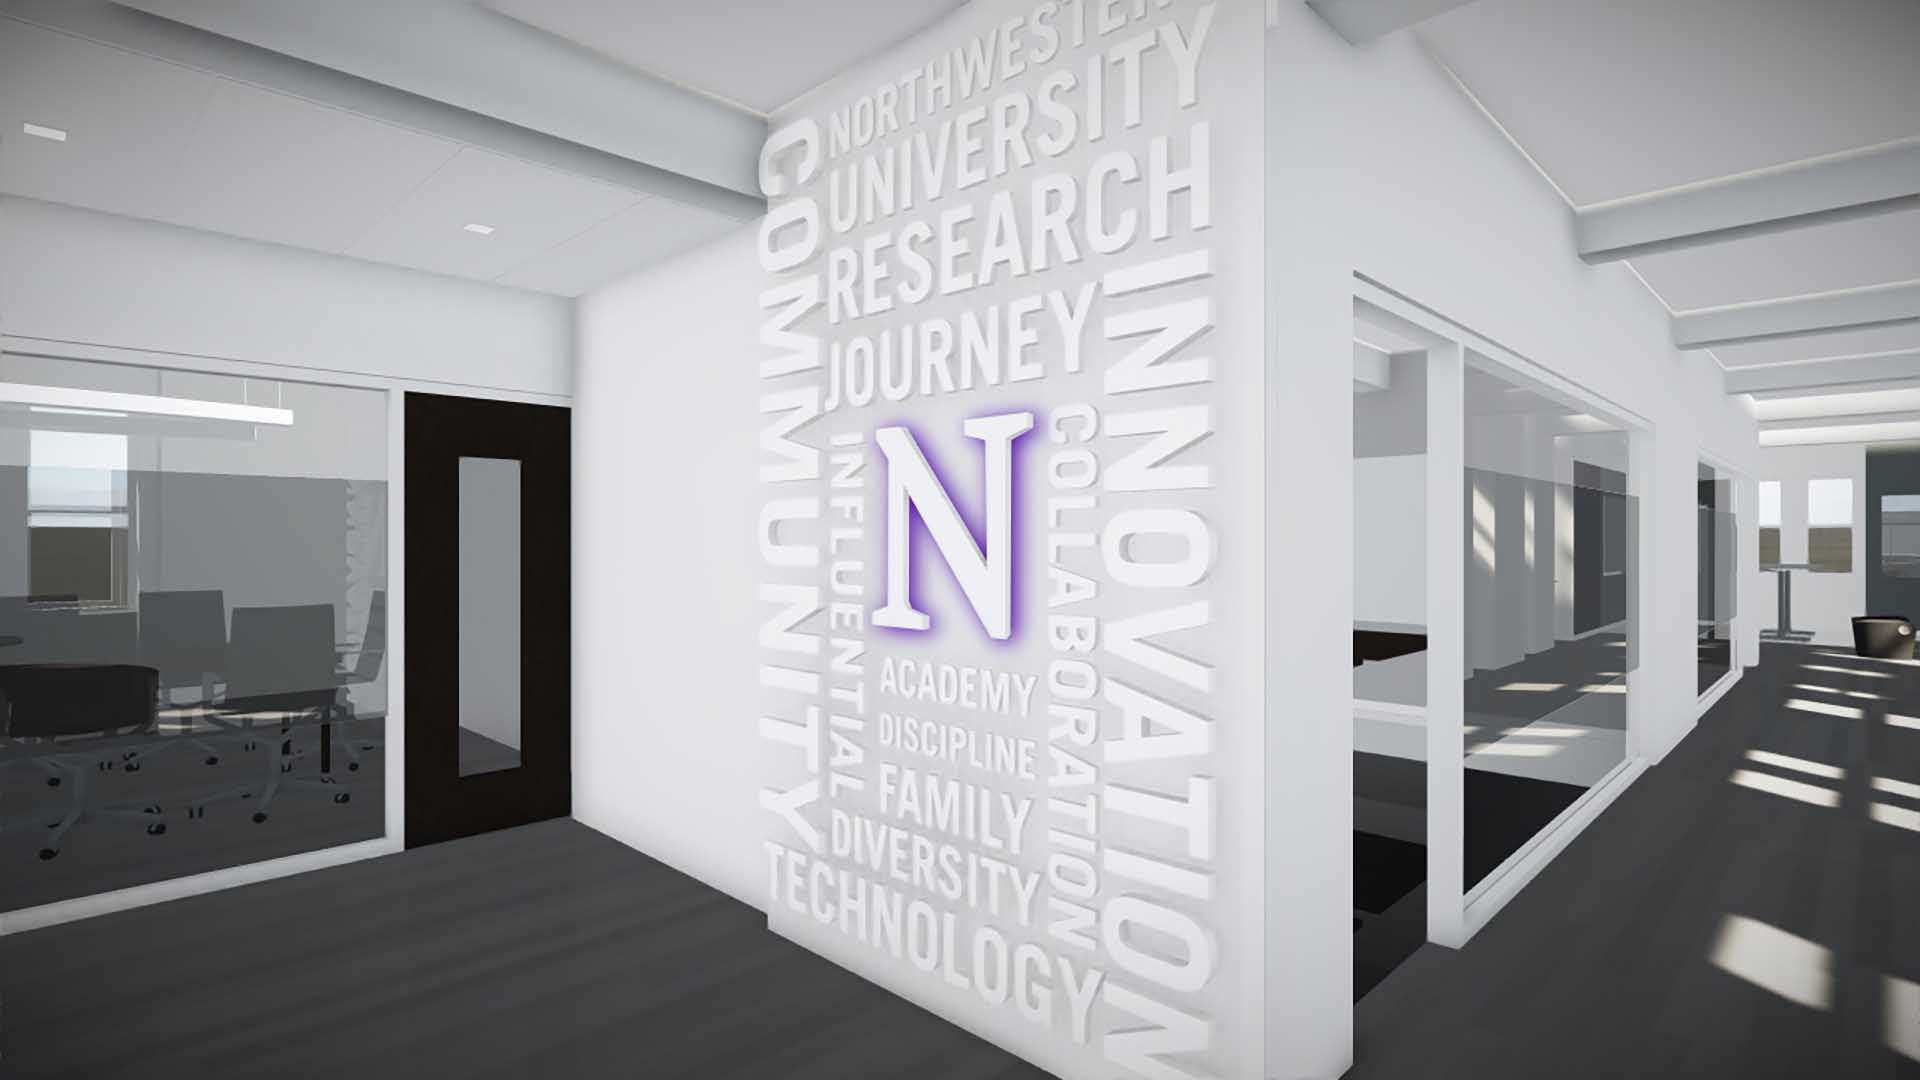 Wall with dimensional Northwestern university logo with purple edge lighting with surrounded with white dimensional words